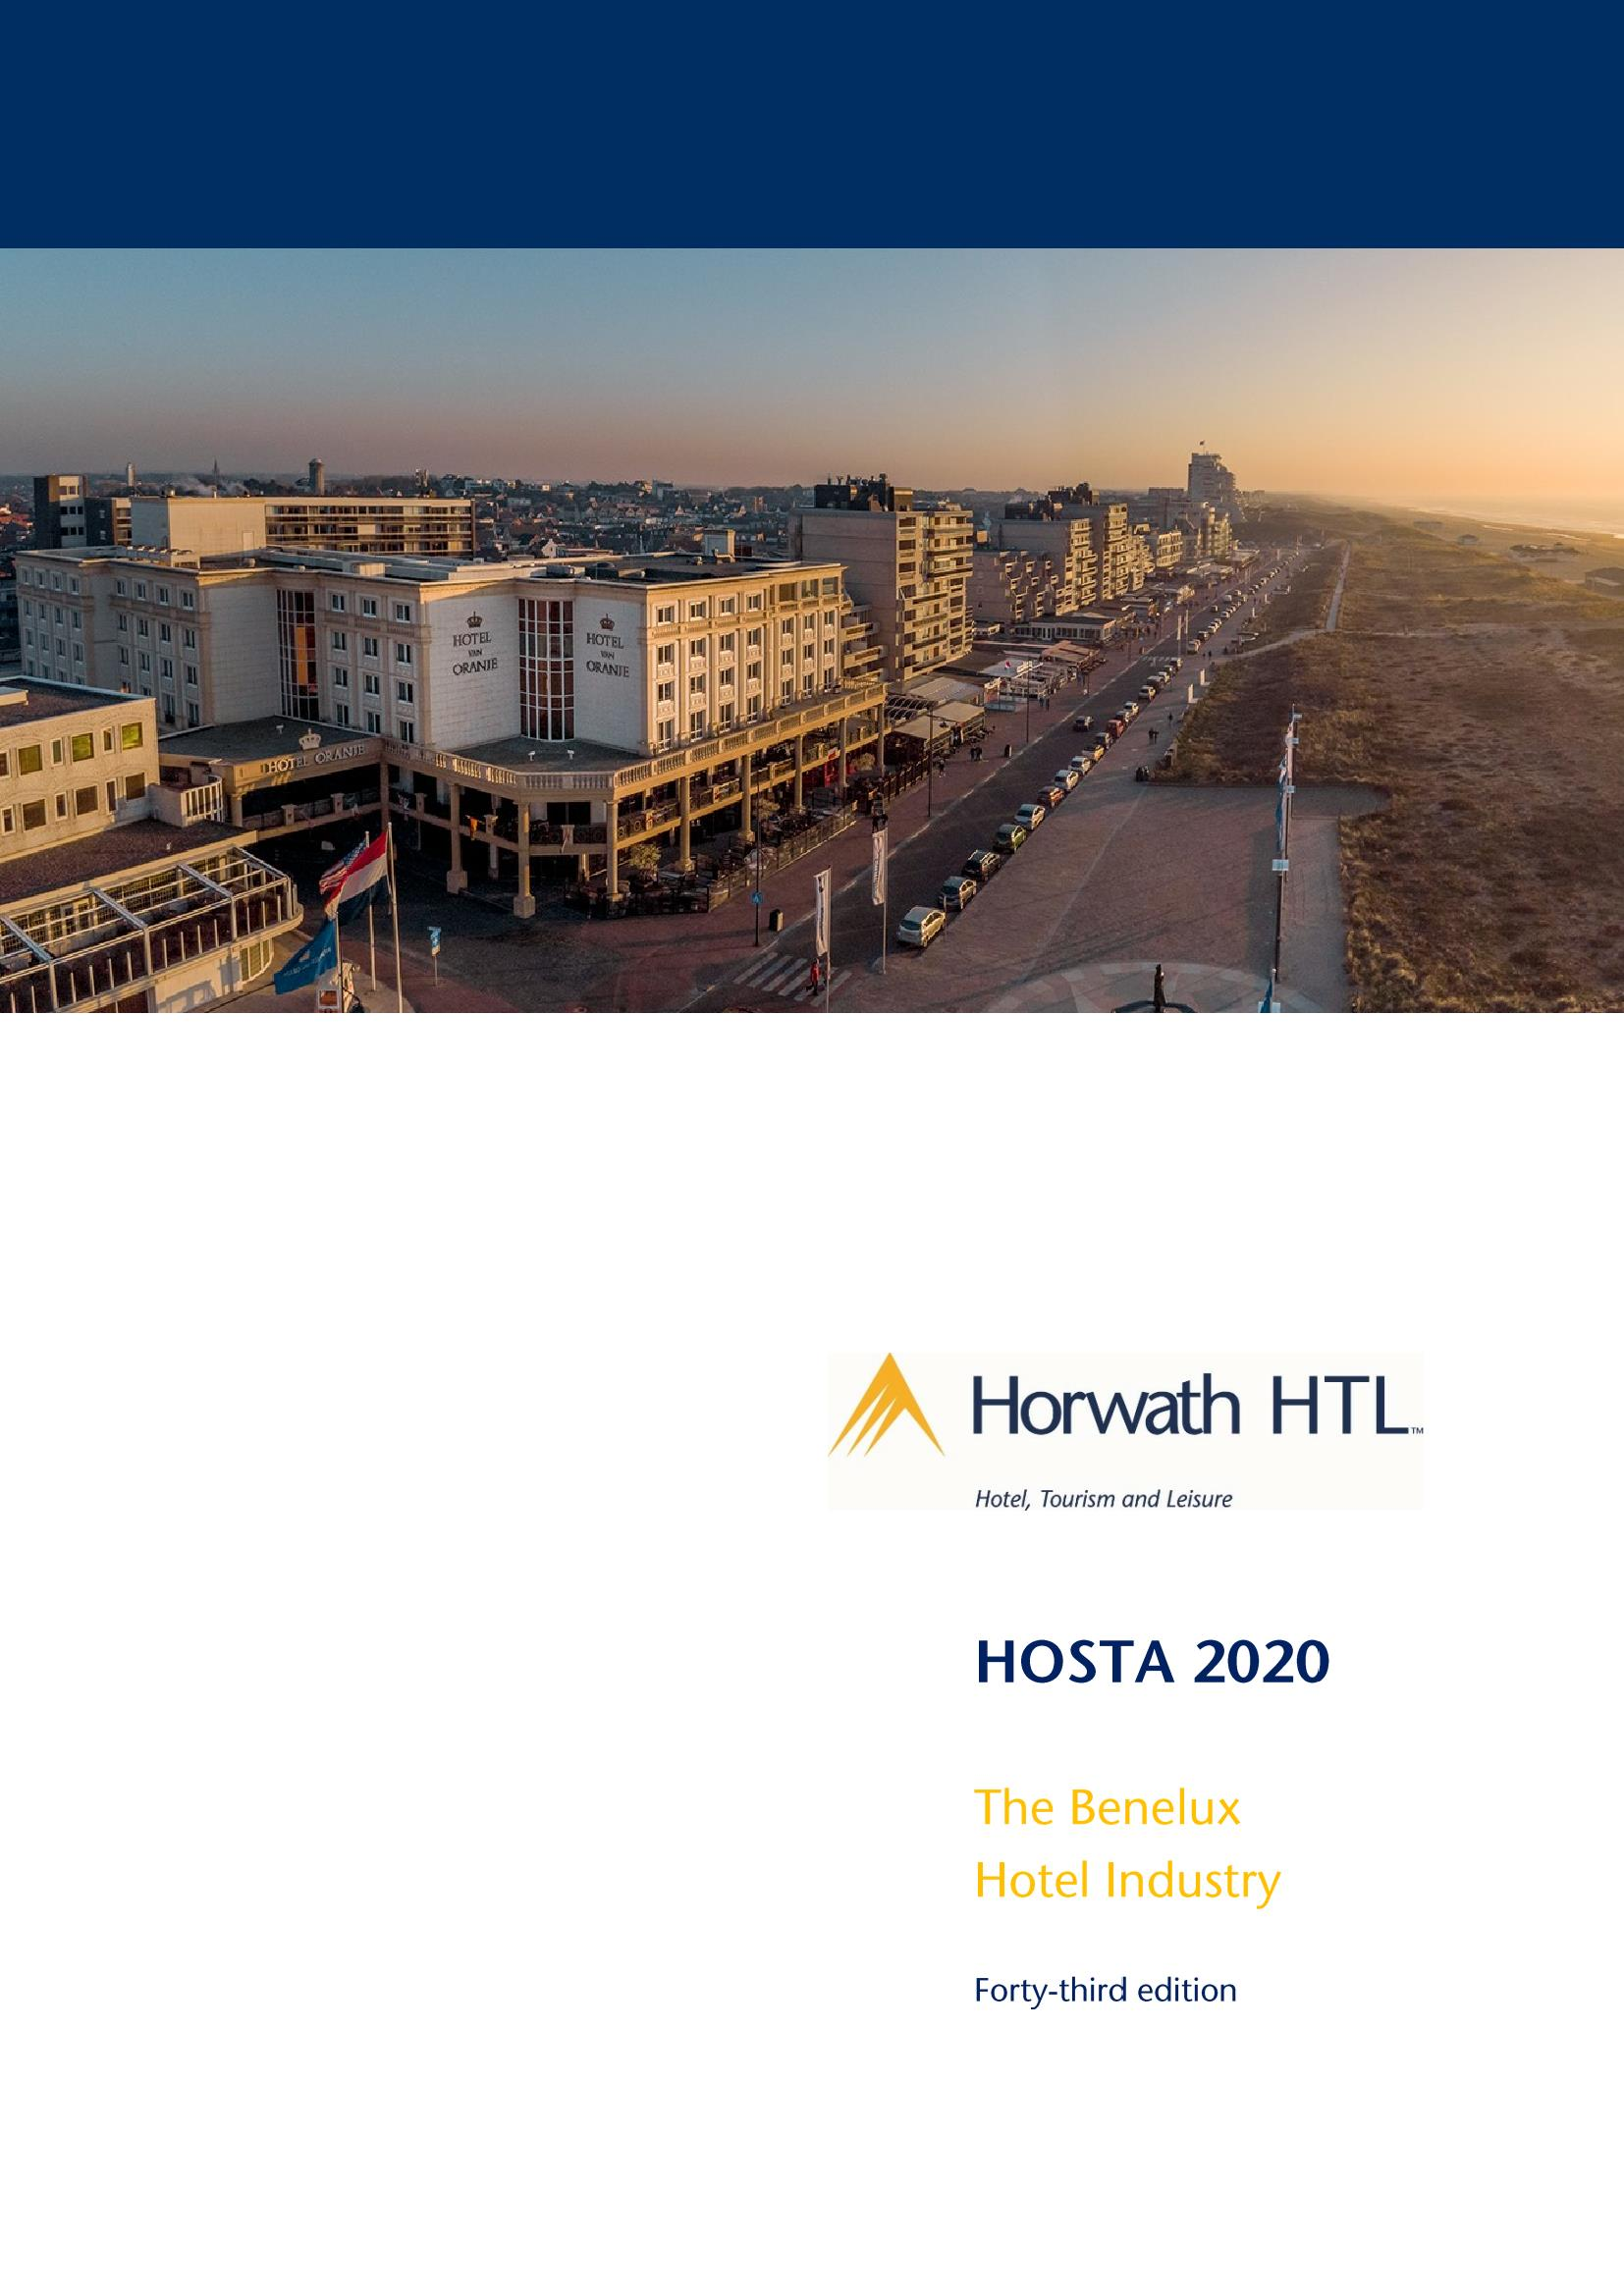 Report: HOSTA 2020 – The Benelux Hotel Industry